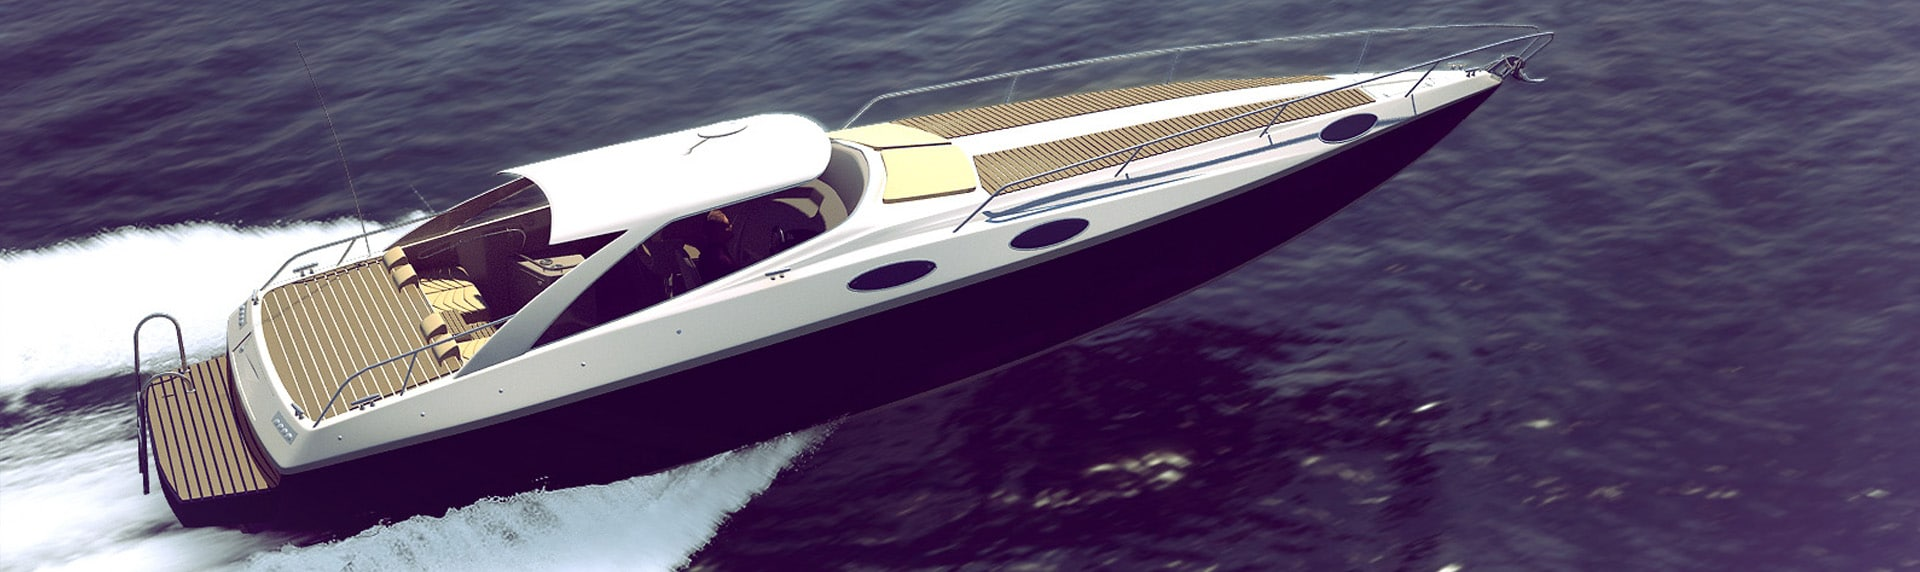 Speed boat 3D